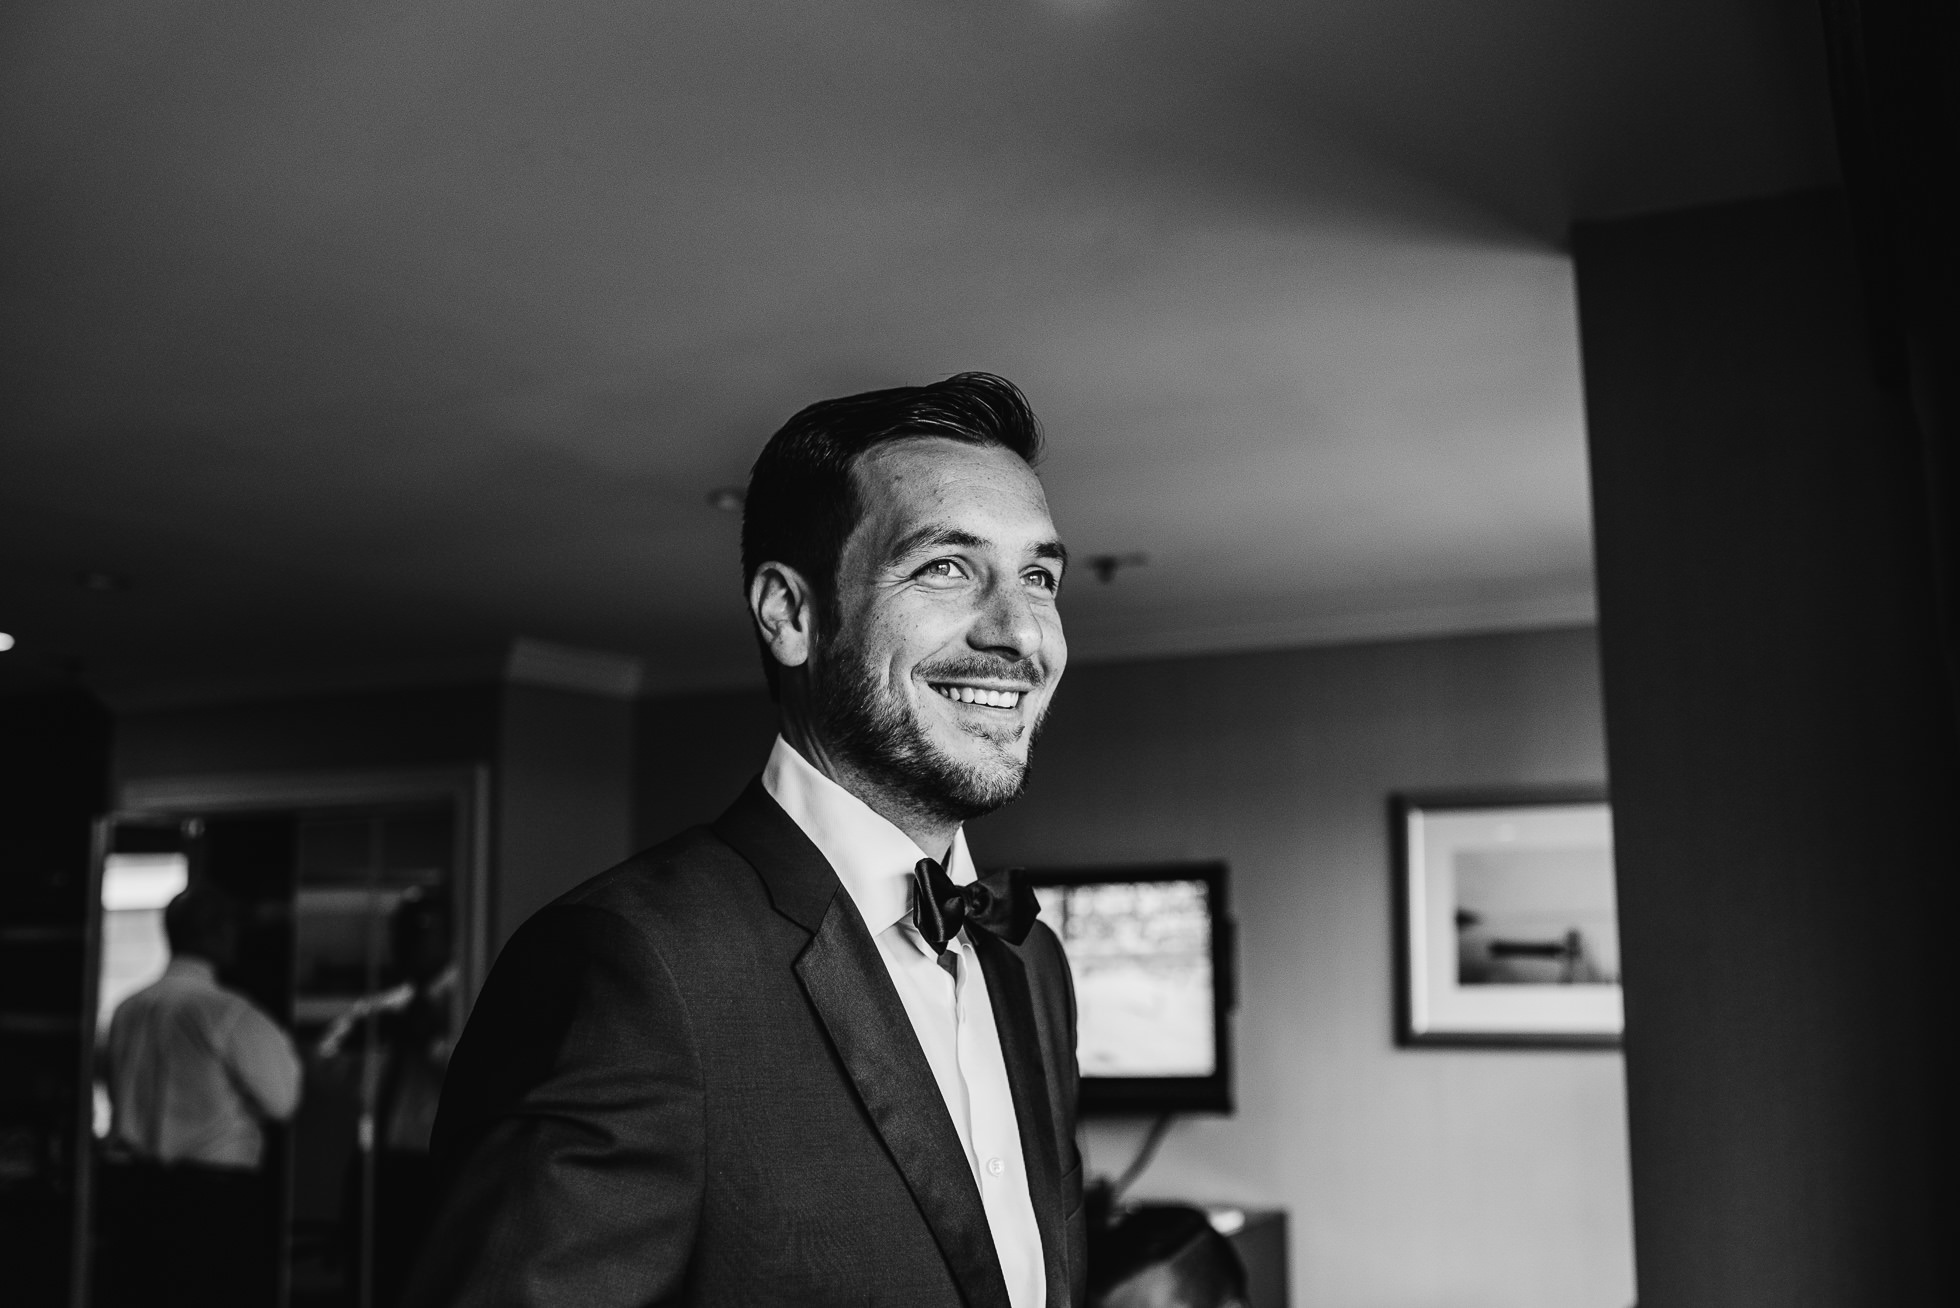 groom getting ready at lyndhurst castle wedding photographed by traverse the tides